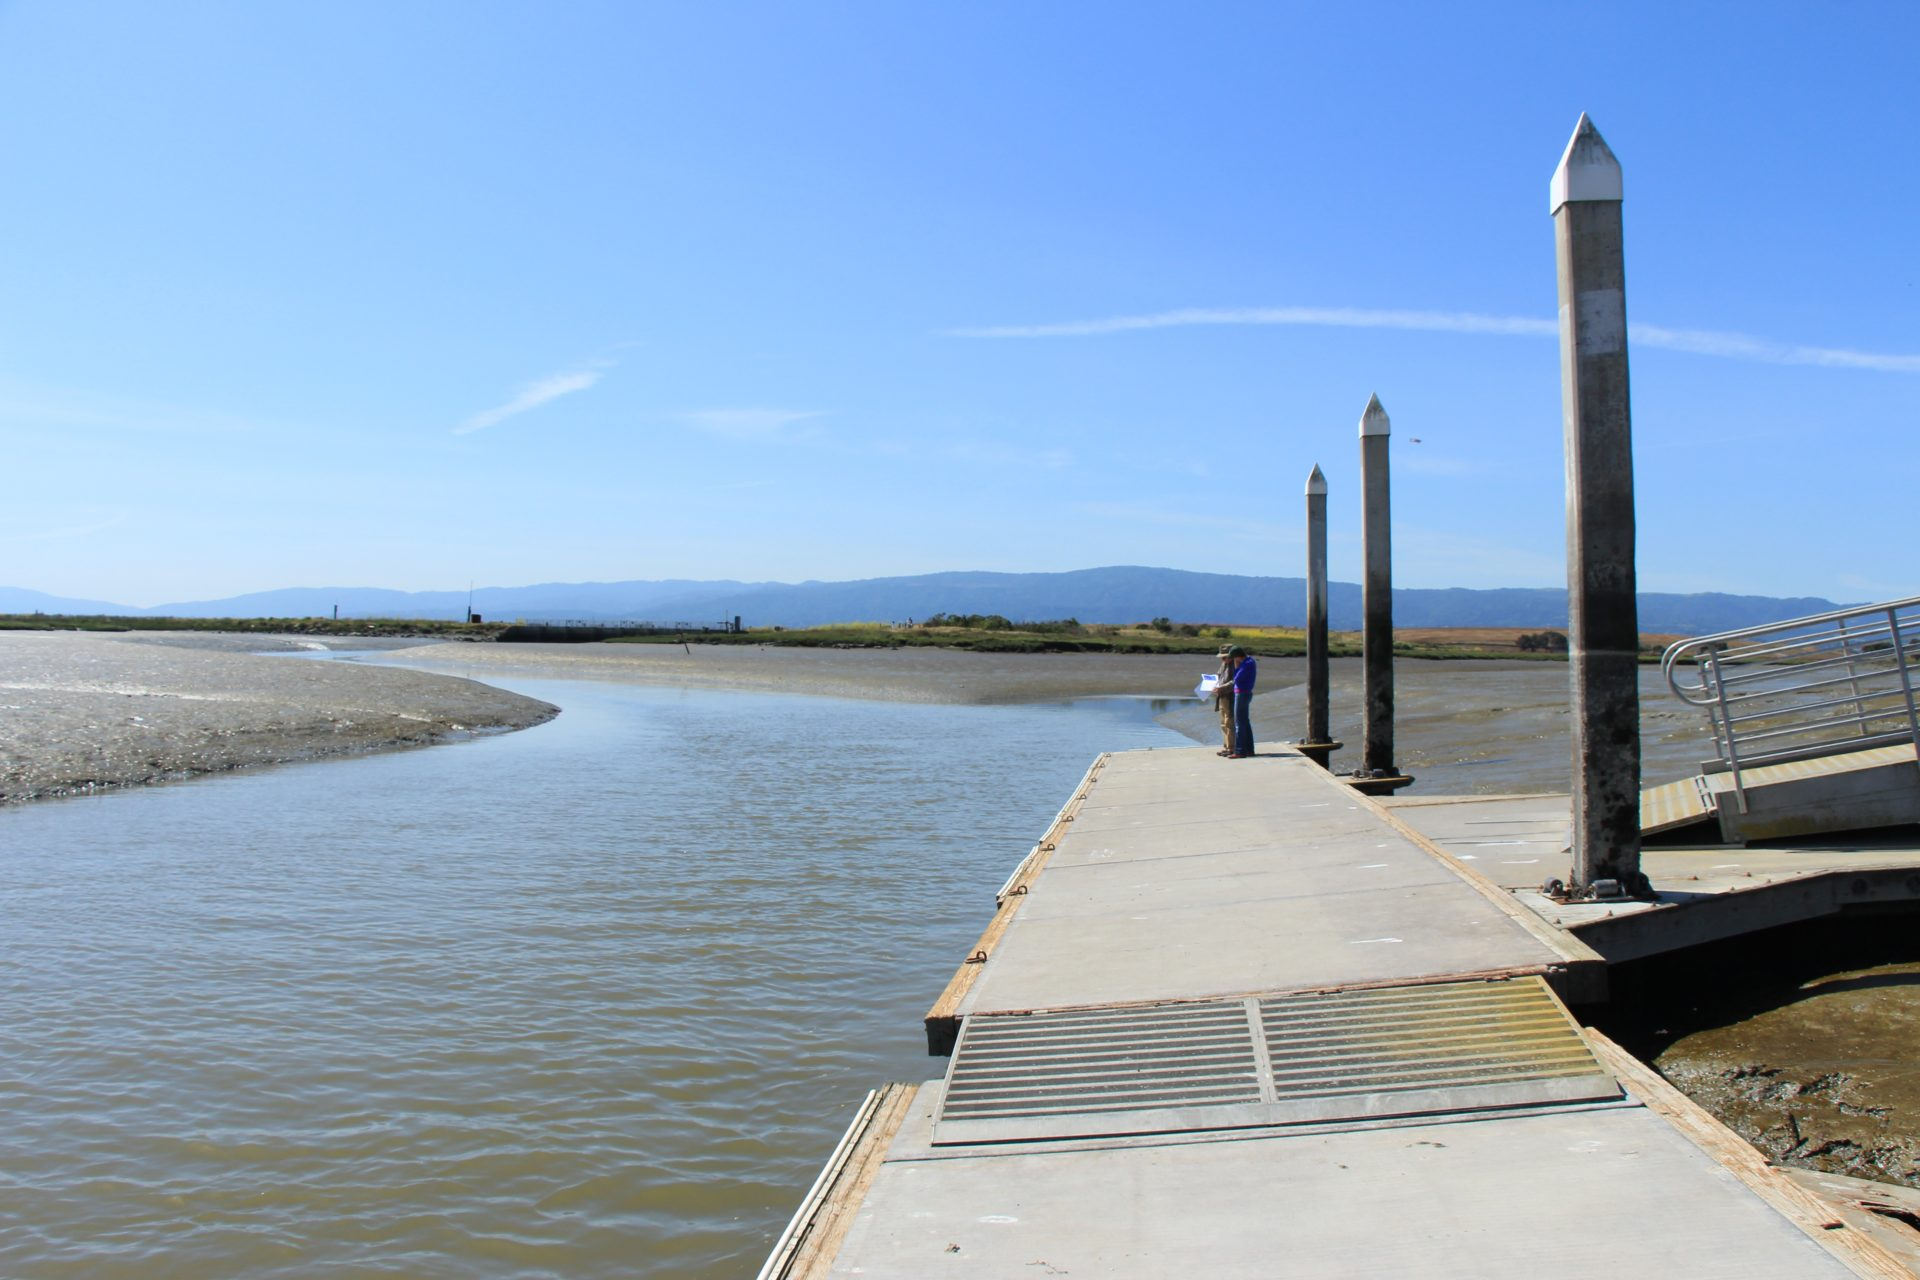 People at far end of floating dock in a narrow channel with mudflats exposed at low tide